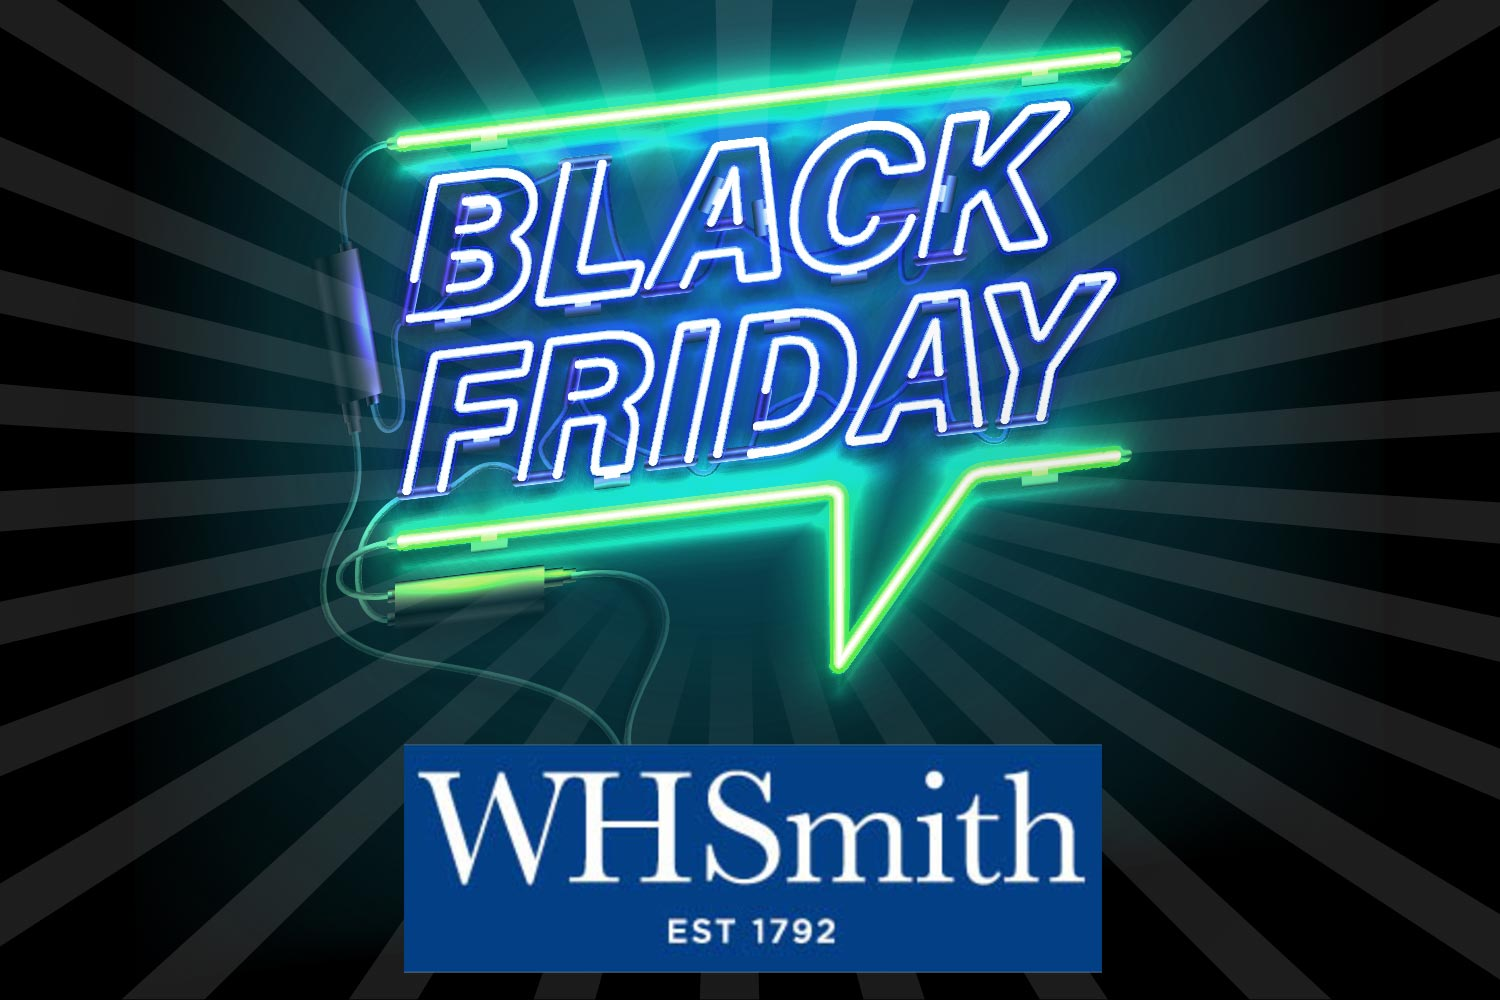 WHSMith's Black Friday sale could include voucher offers